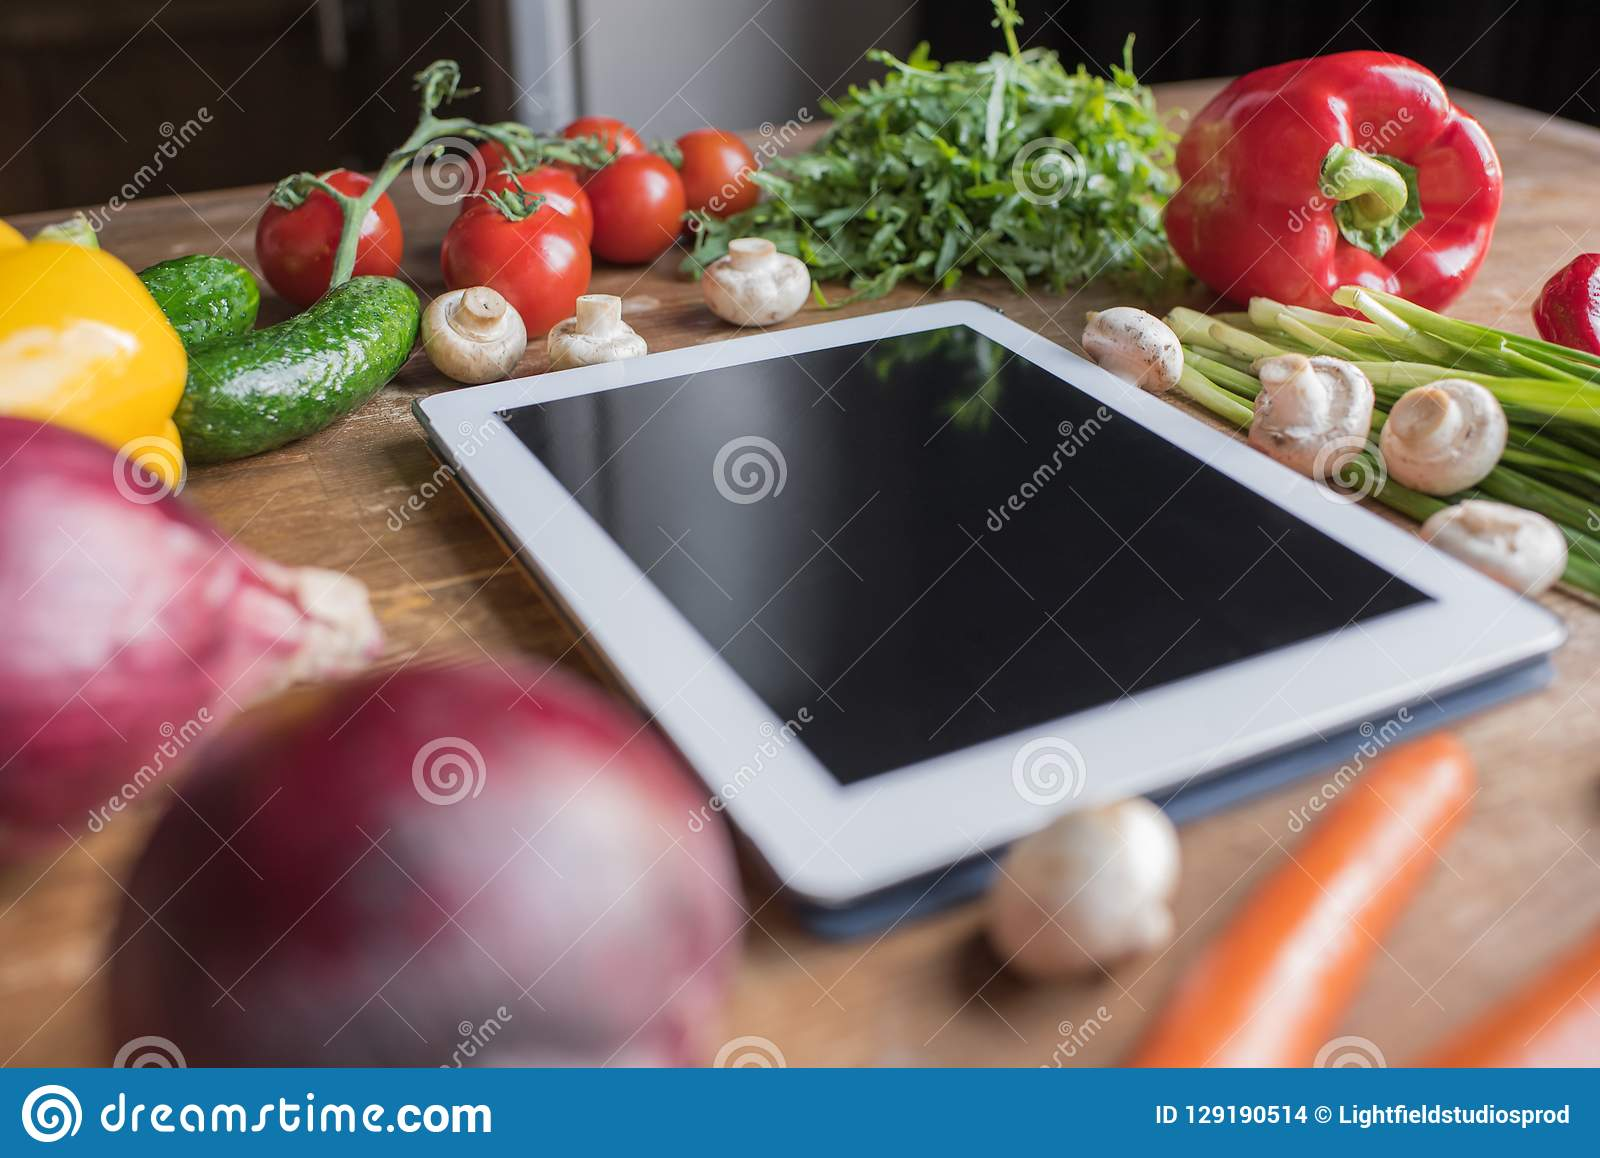 close-up shot of blank tablet with vegetables